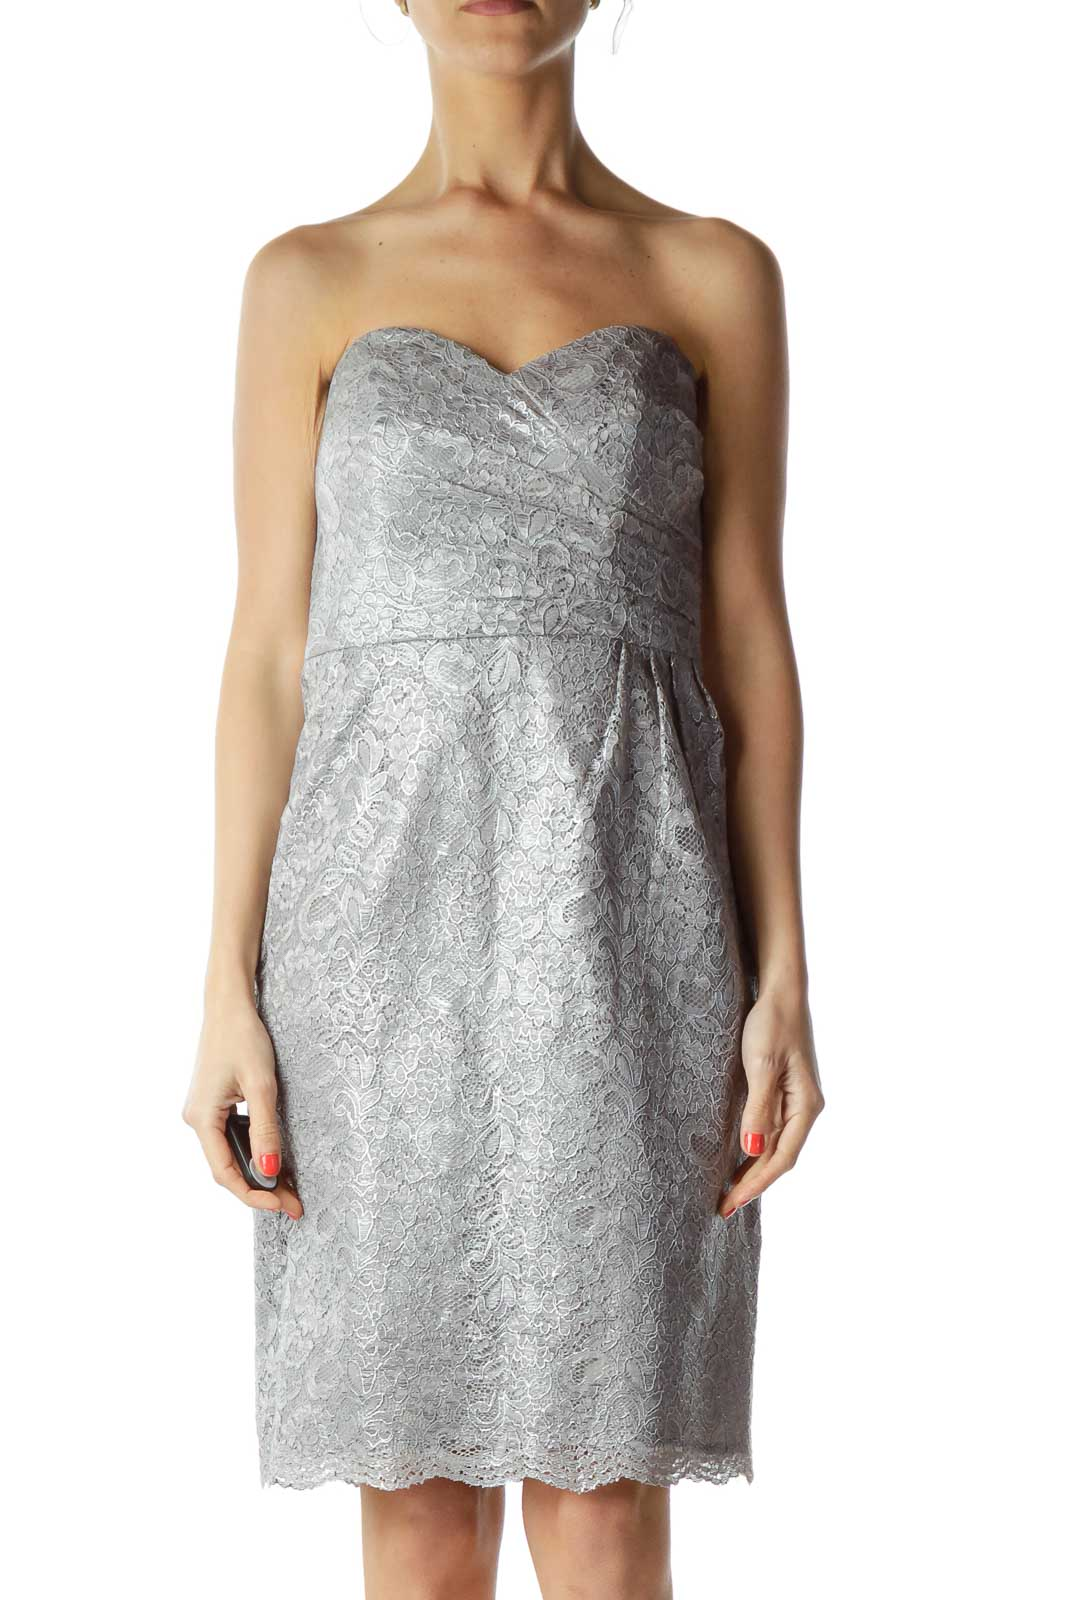 Gray Silver Metallic Lace Strapless Cocktail Dress Front